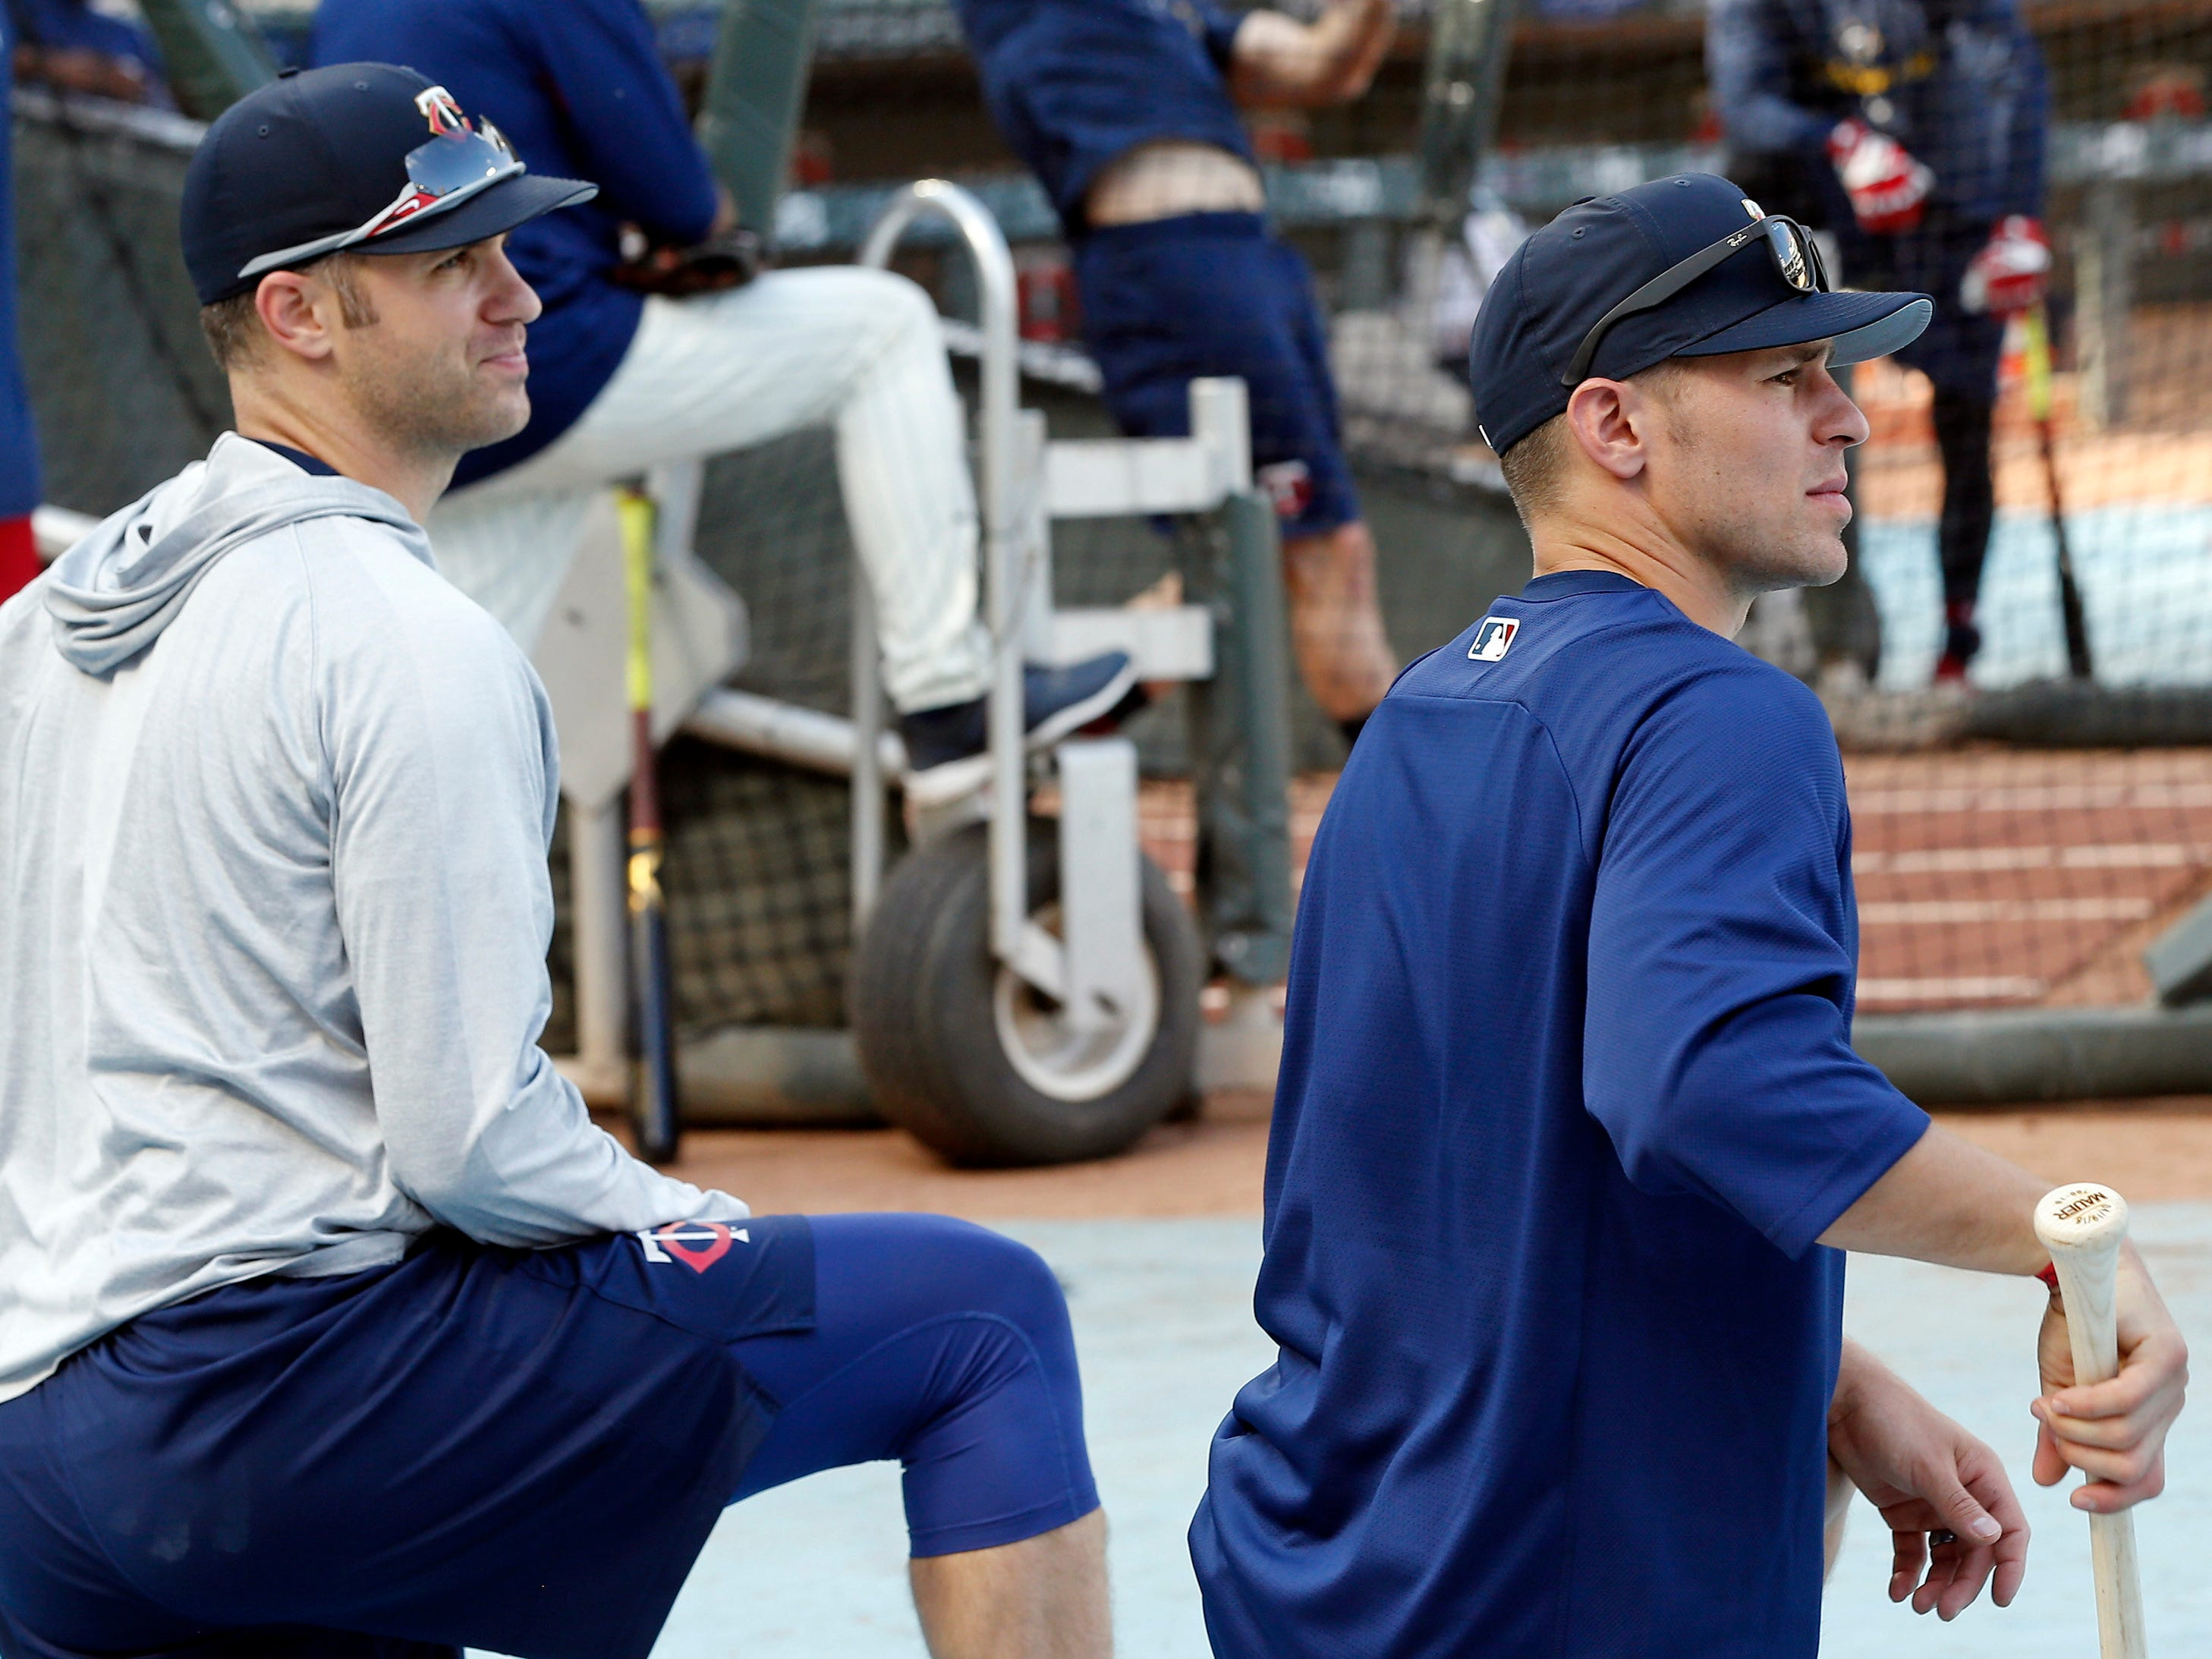 Minnesota Twins' Joe Mauer, left, and Minnesota Wild's Zach Parise, a former star with the New Jersey Devils, watch batting practice before a baseball game between the Twins and the New York Yankees Wednesday, Sept. 12, 2018, in Minneapolis. Several of the NHL hockey team players took part in batting. The Wild open training camp Thursday in St Paul, Minn.